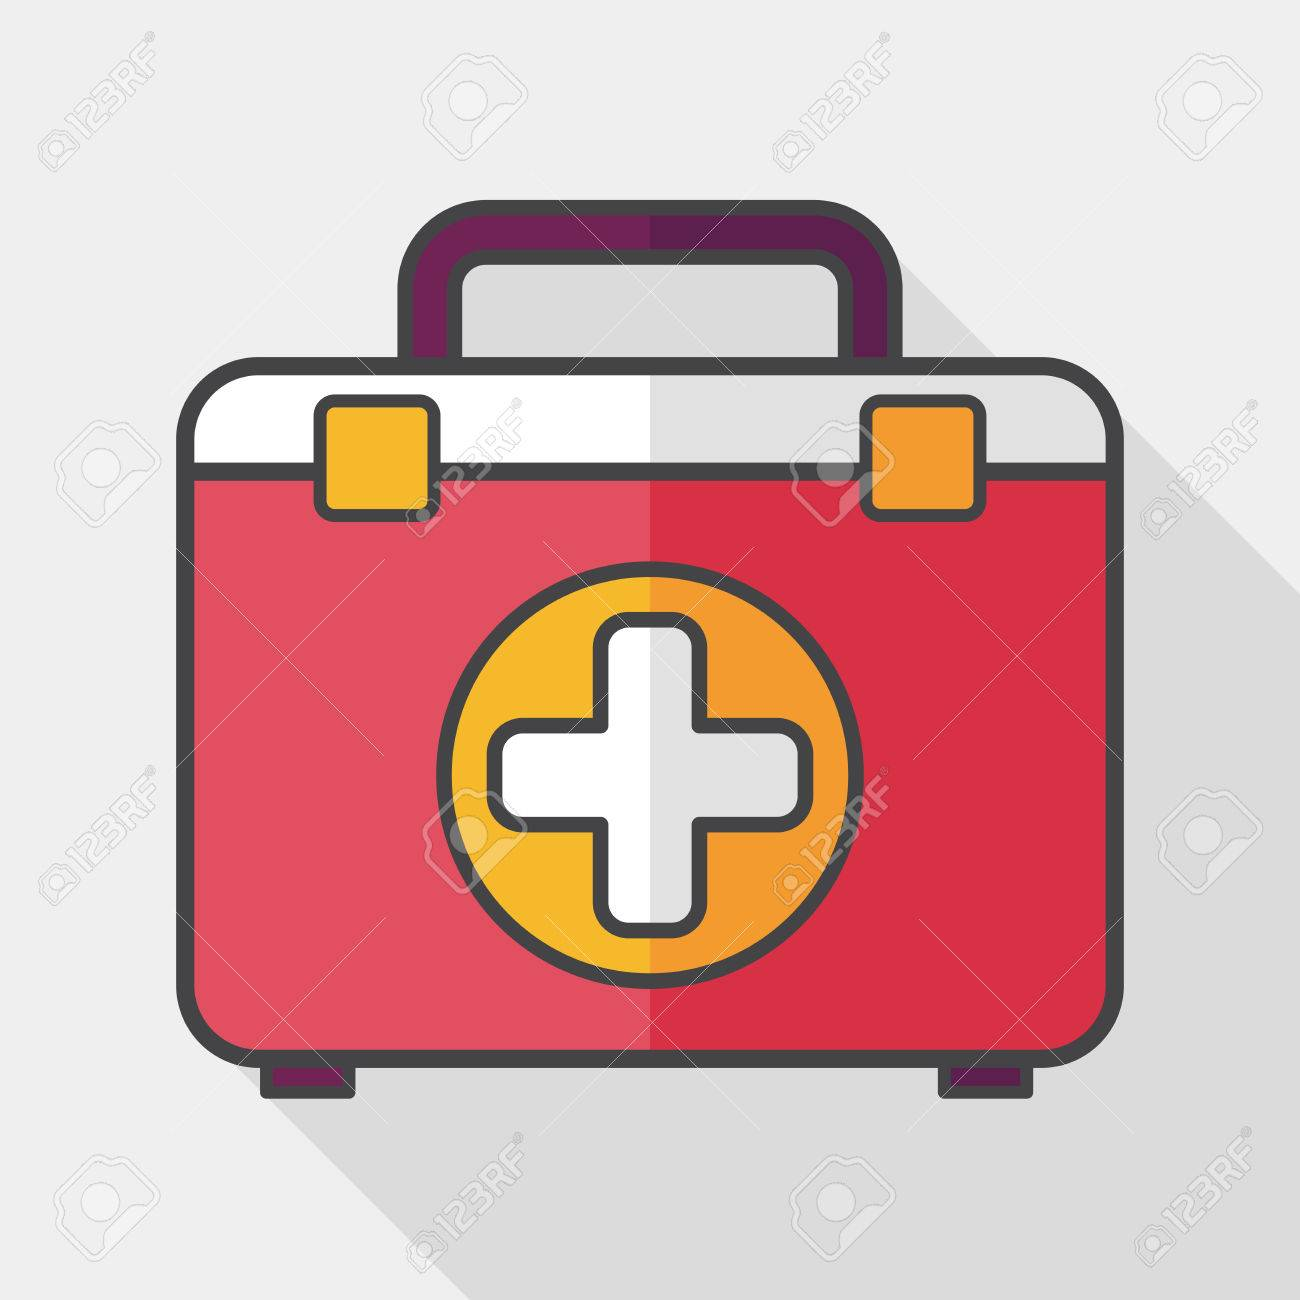 first aid kit flat icon with long shadow, - 44876092